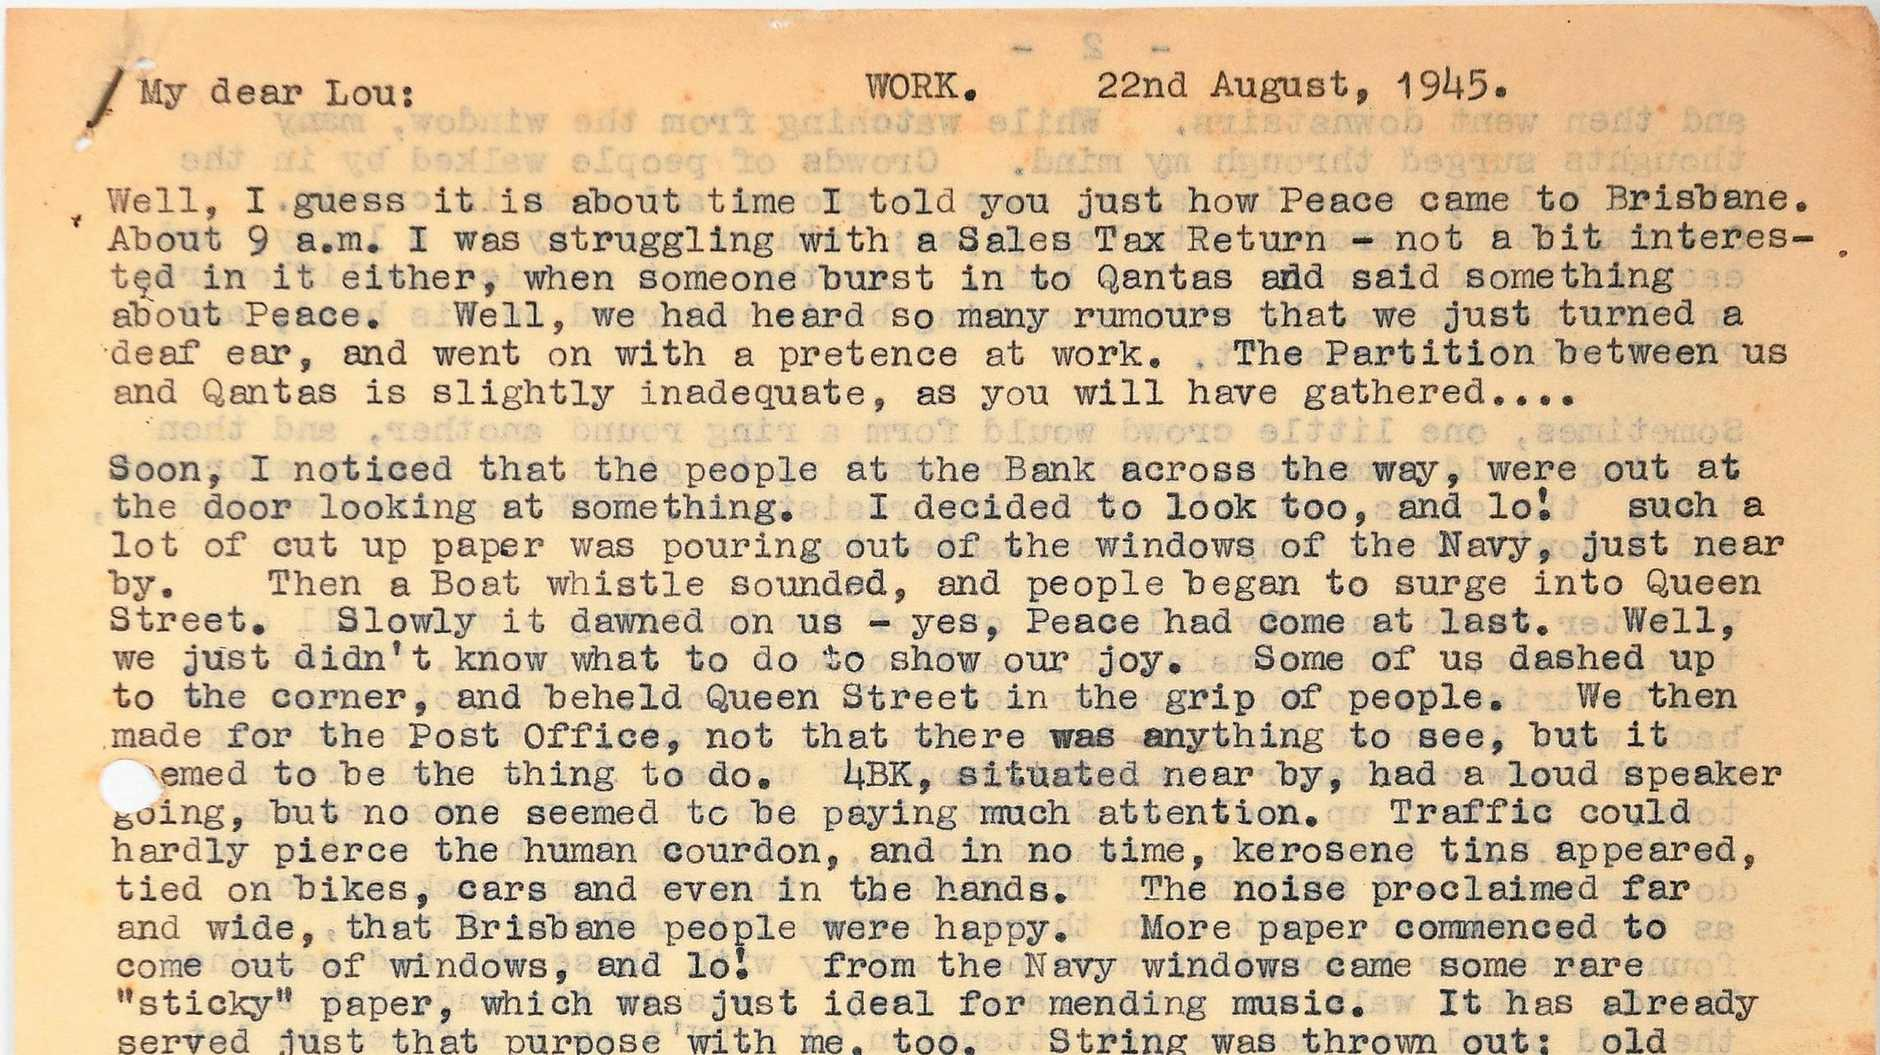 Letters from Zillah to Lou in 1945.